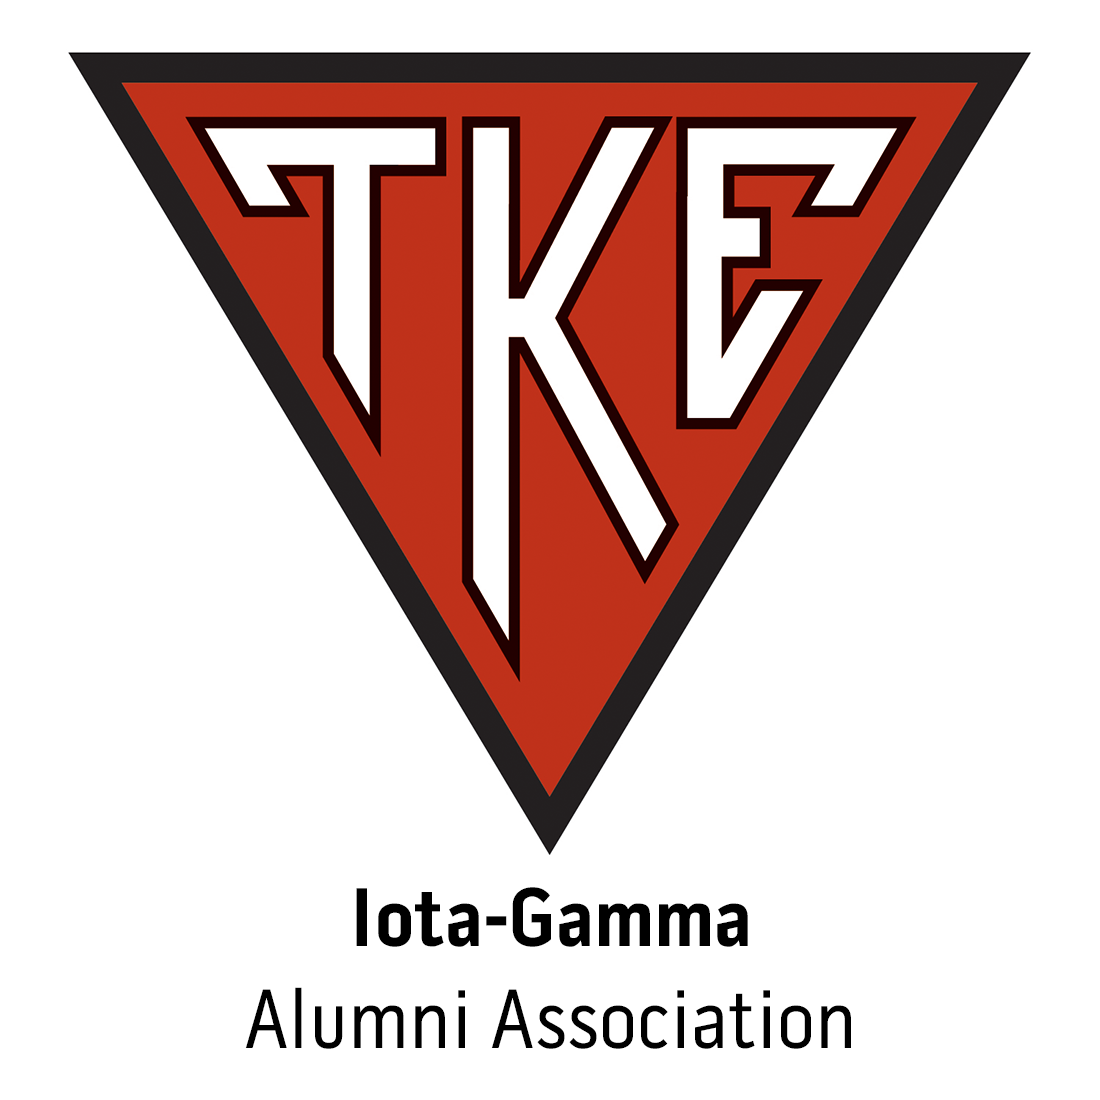 Iota-Gamma Alumni Association at Truman State University